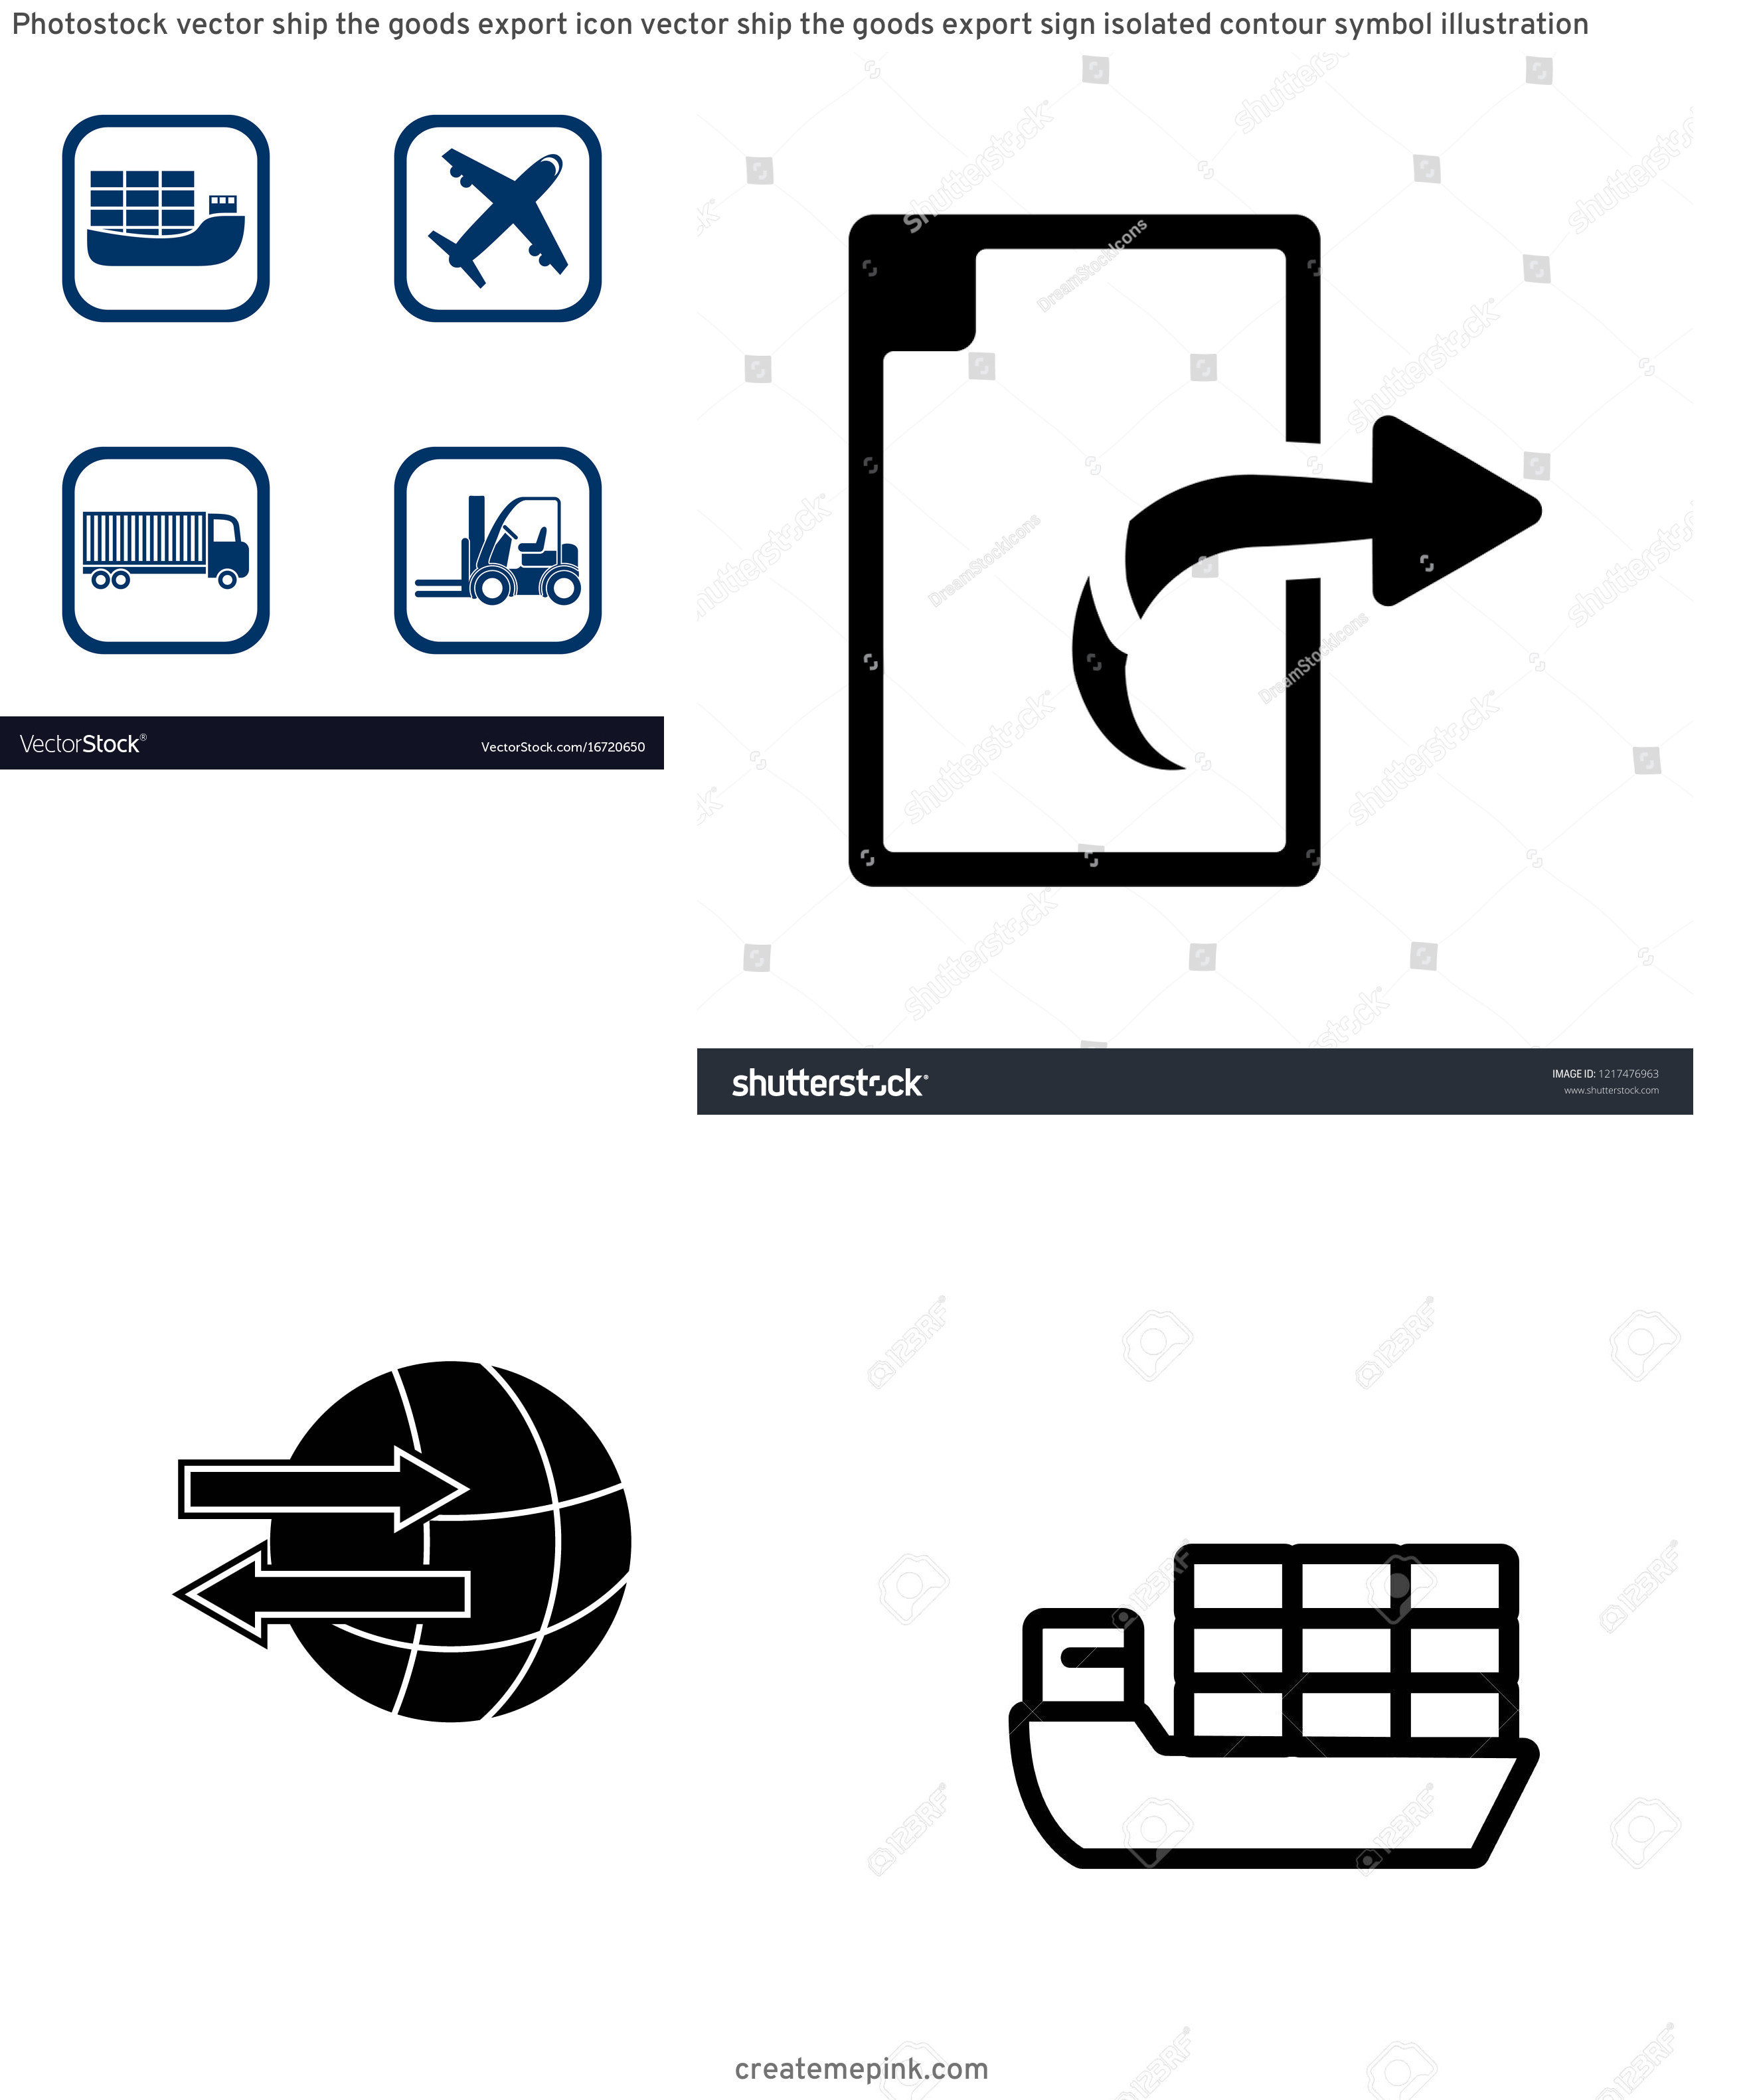 Export Icon Vector: Photostock Vector Ship The Goods Export Icon Vector Ship The Goods Export Sign Isolated Contour Symbol Illustration